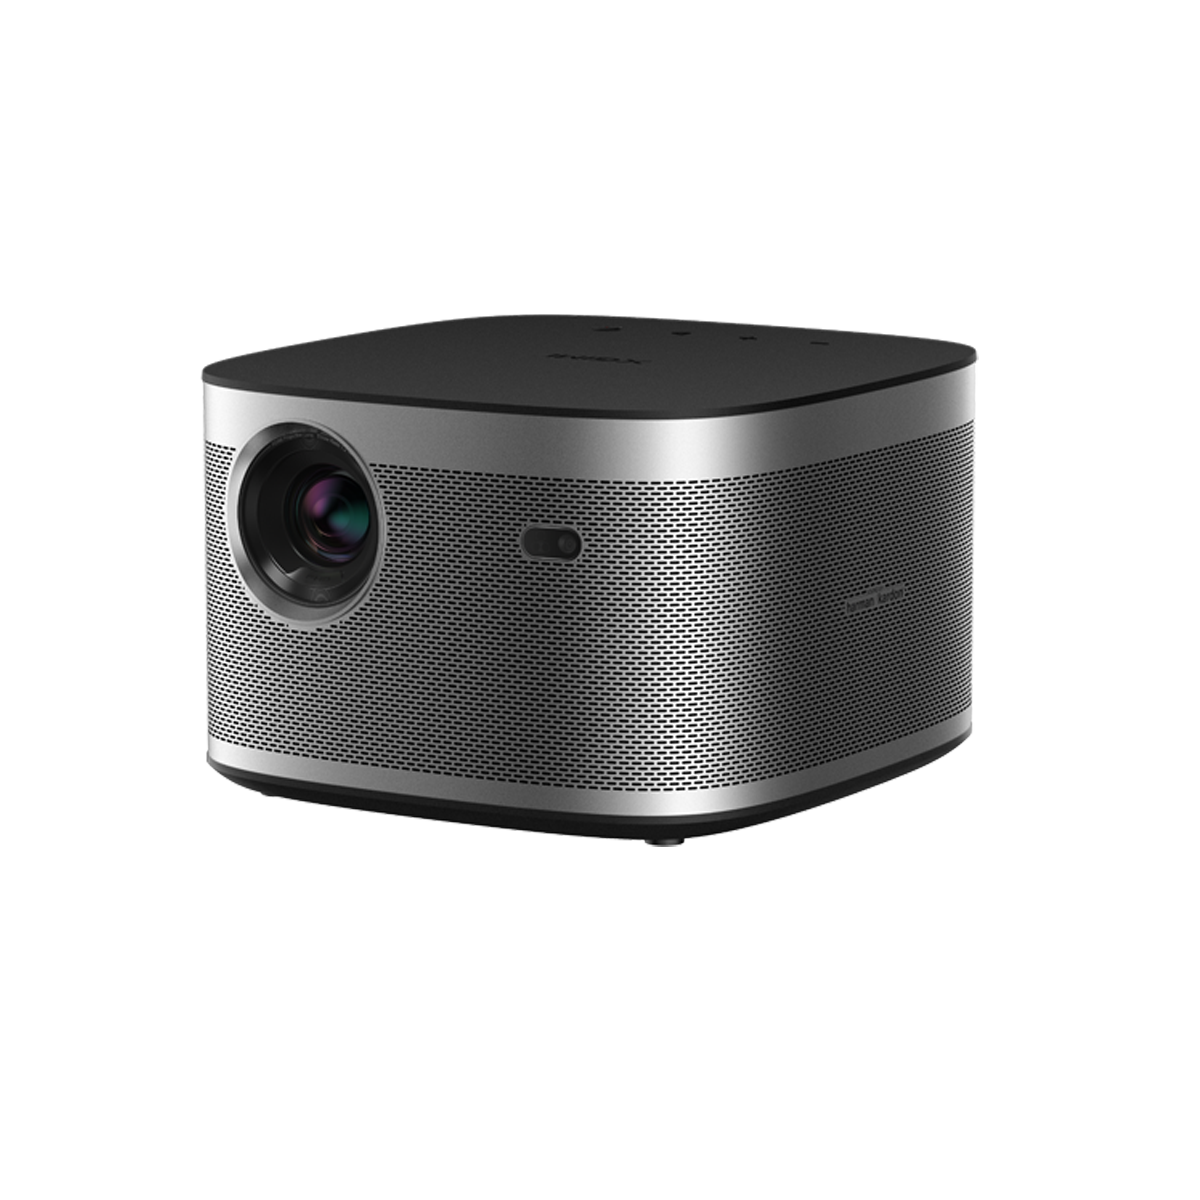 [Android 10.0] XGIMI Horizon / Pro Projector 4K Resolution LED 2200 ANSI Lumens International DLP System Android TV 10.0 OS 2+32GB Auto Focus HDR10 Google Assistant Home Theater